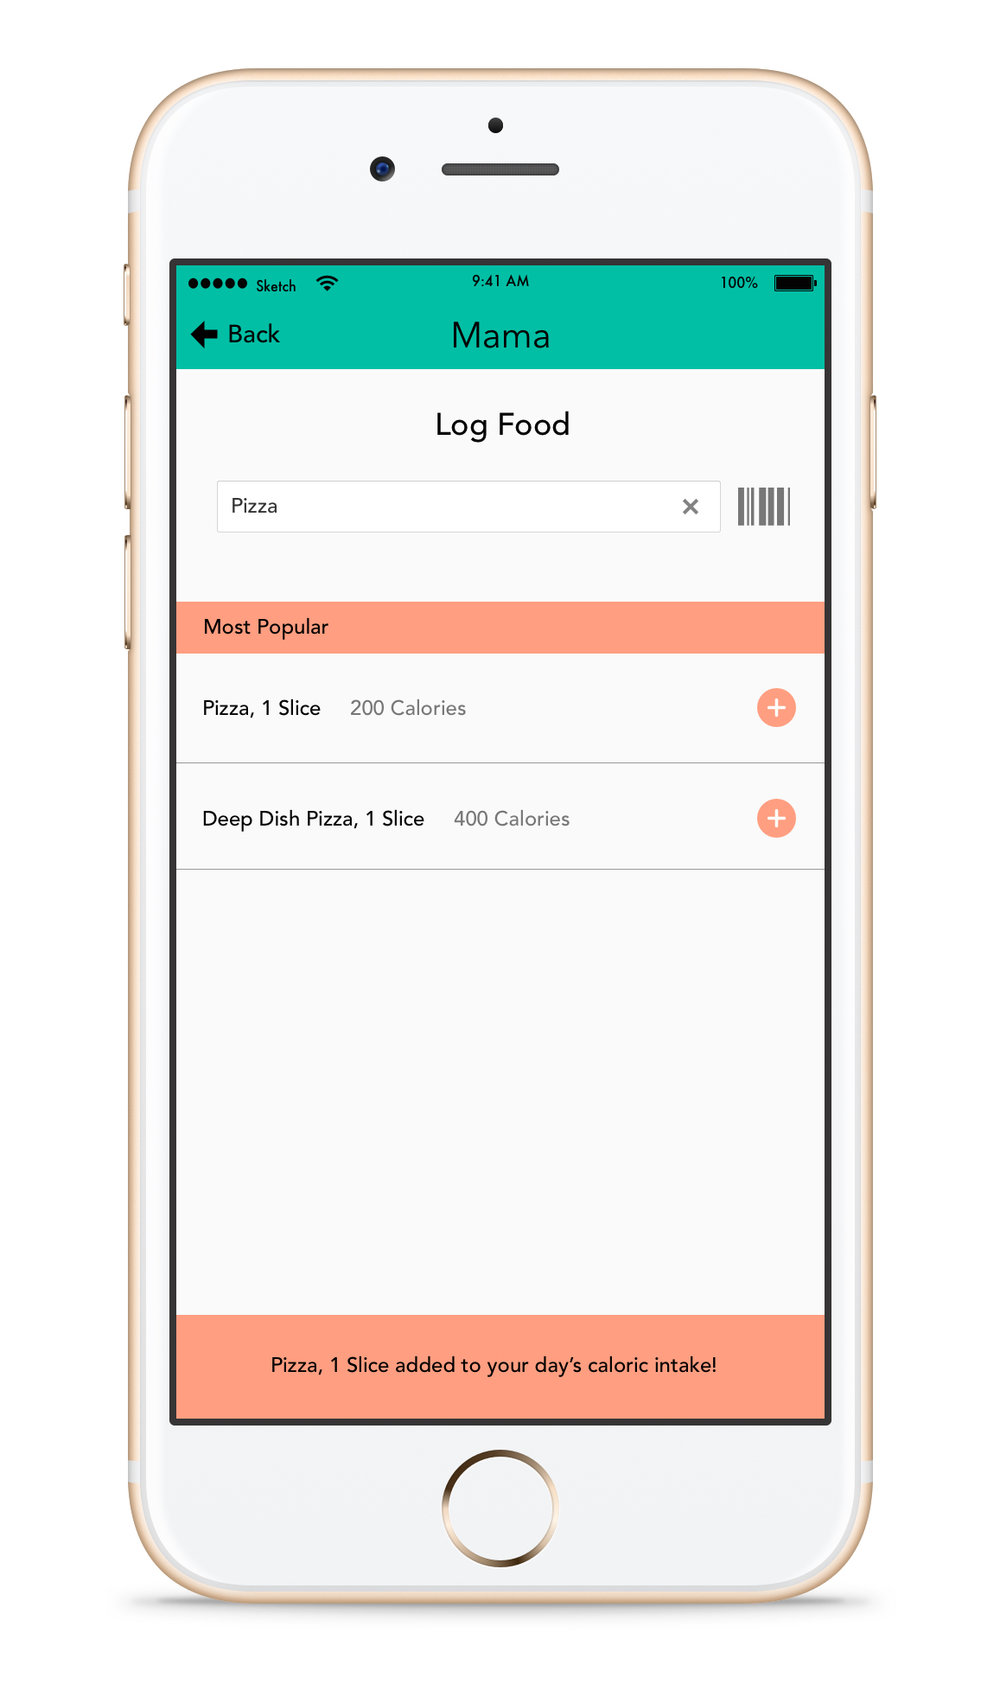 Status Indication - When a food is selected there is an indication that it has been logged. It is placed in the bottom position so it does not get in the way if the mother wants to log additional food items.